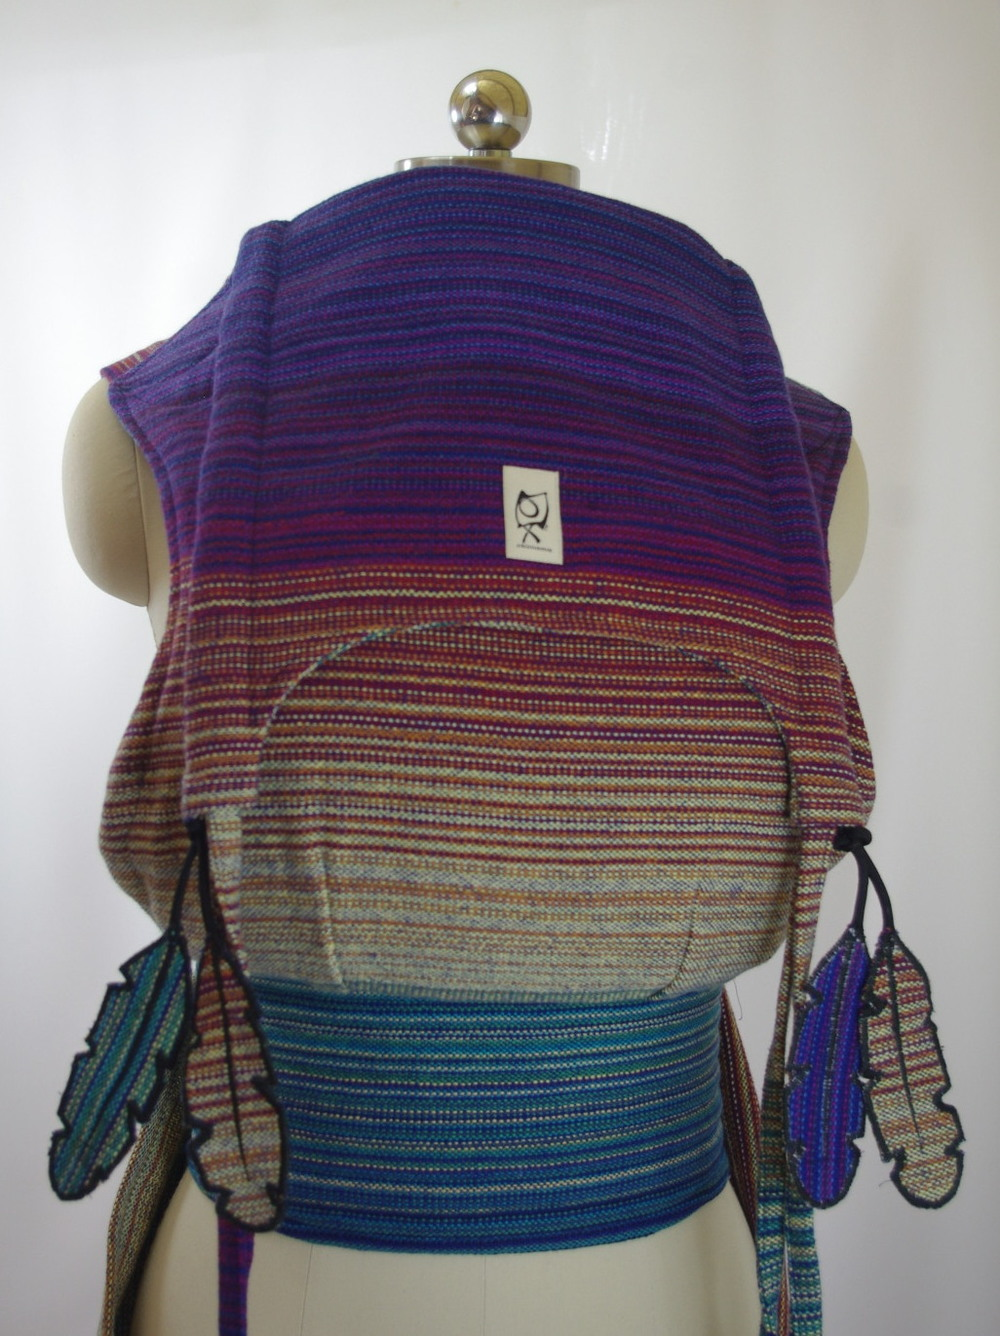 Paz Handwoven ObiMama Wrap Conversion Mei Tai